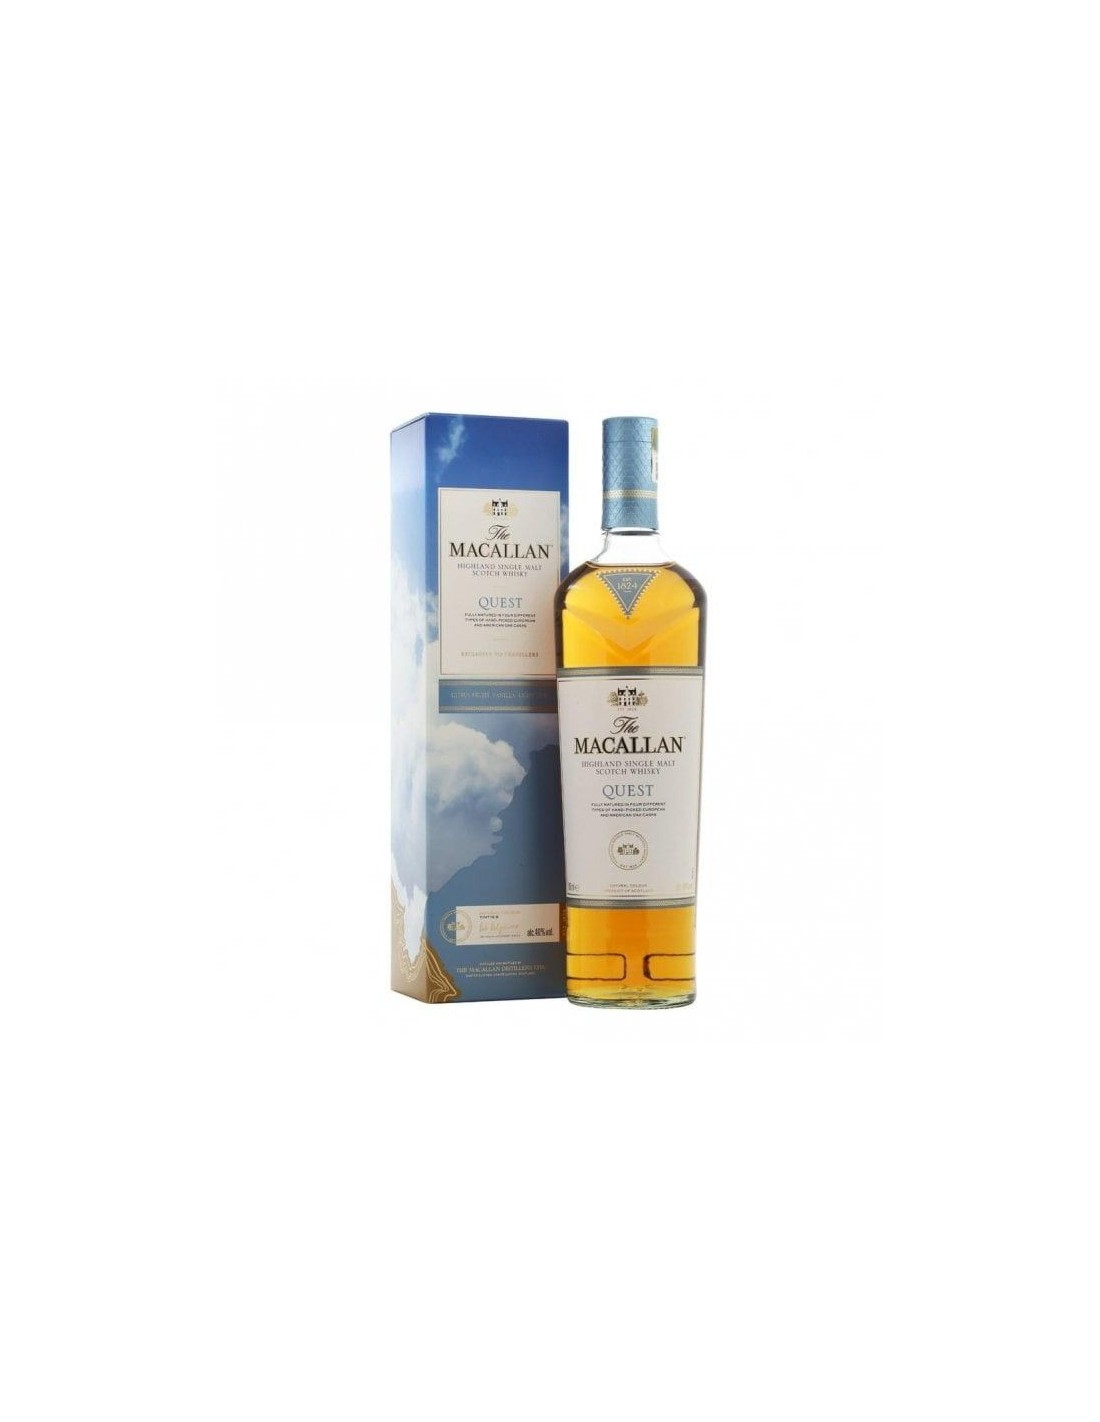 Whisky Macallan Quest Fine Oak, 40% alc., 0.7L, Scotia